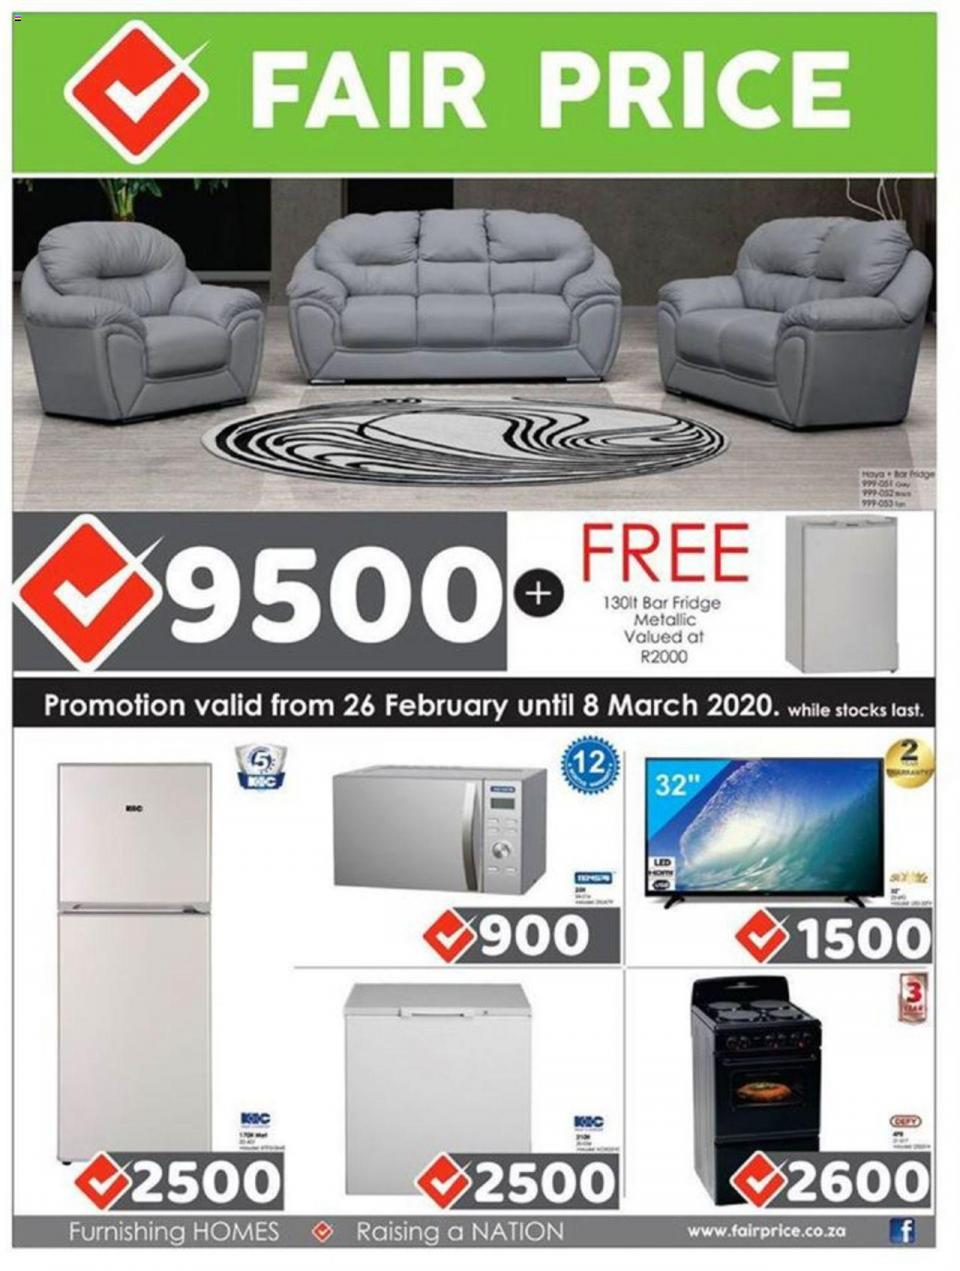 fair price specials low prices this month 24 february 2020